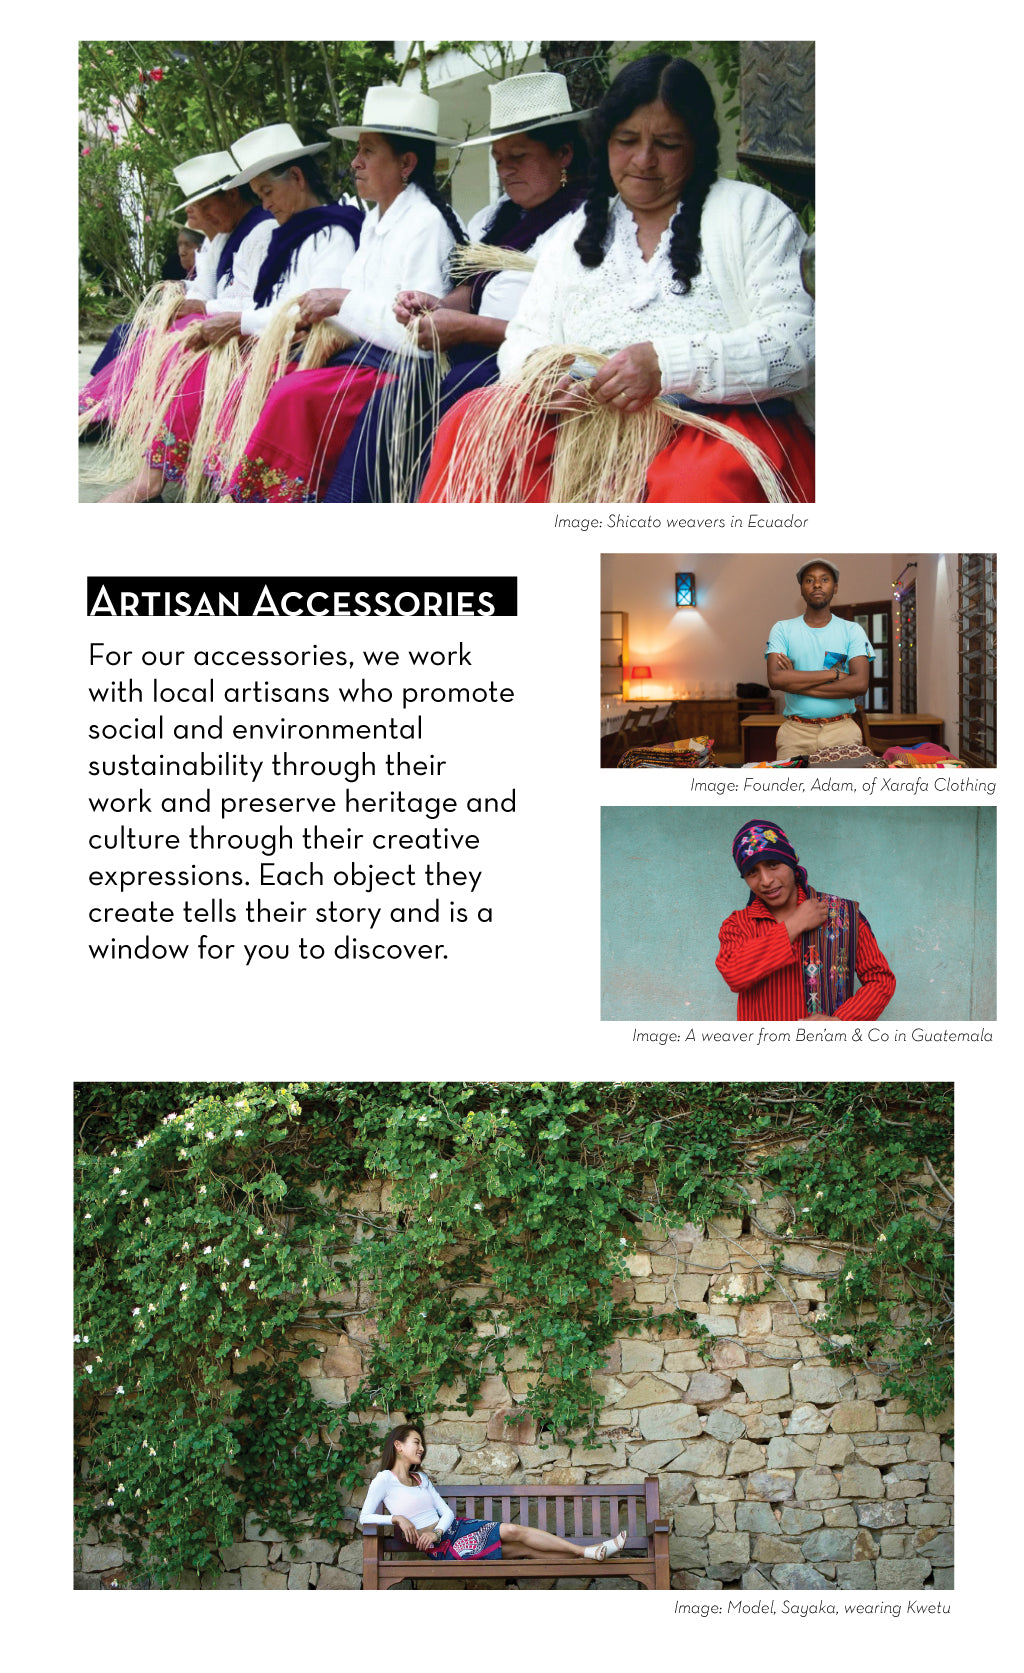 About our artisan partners